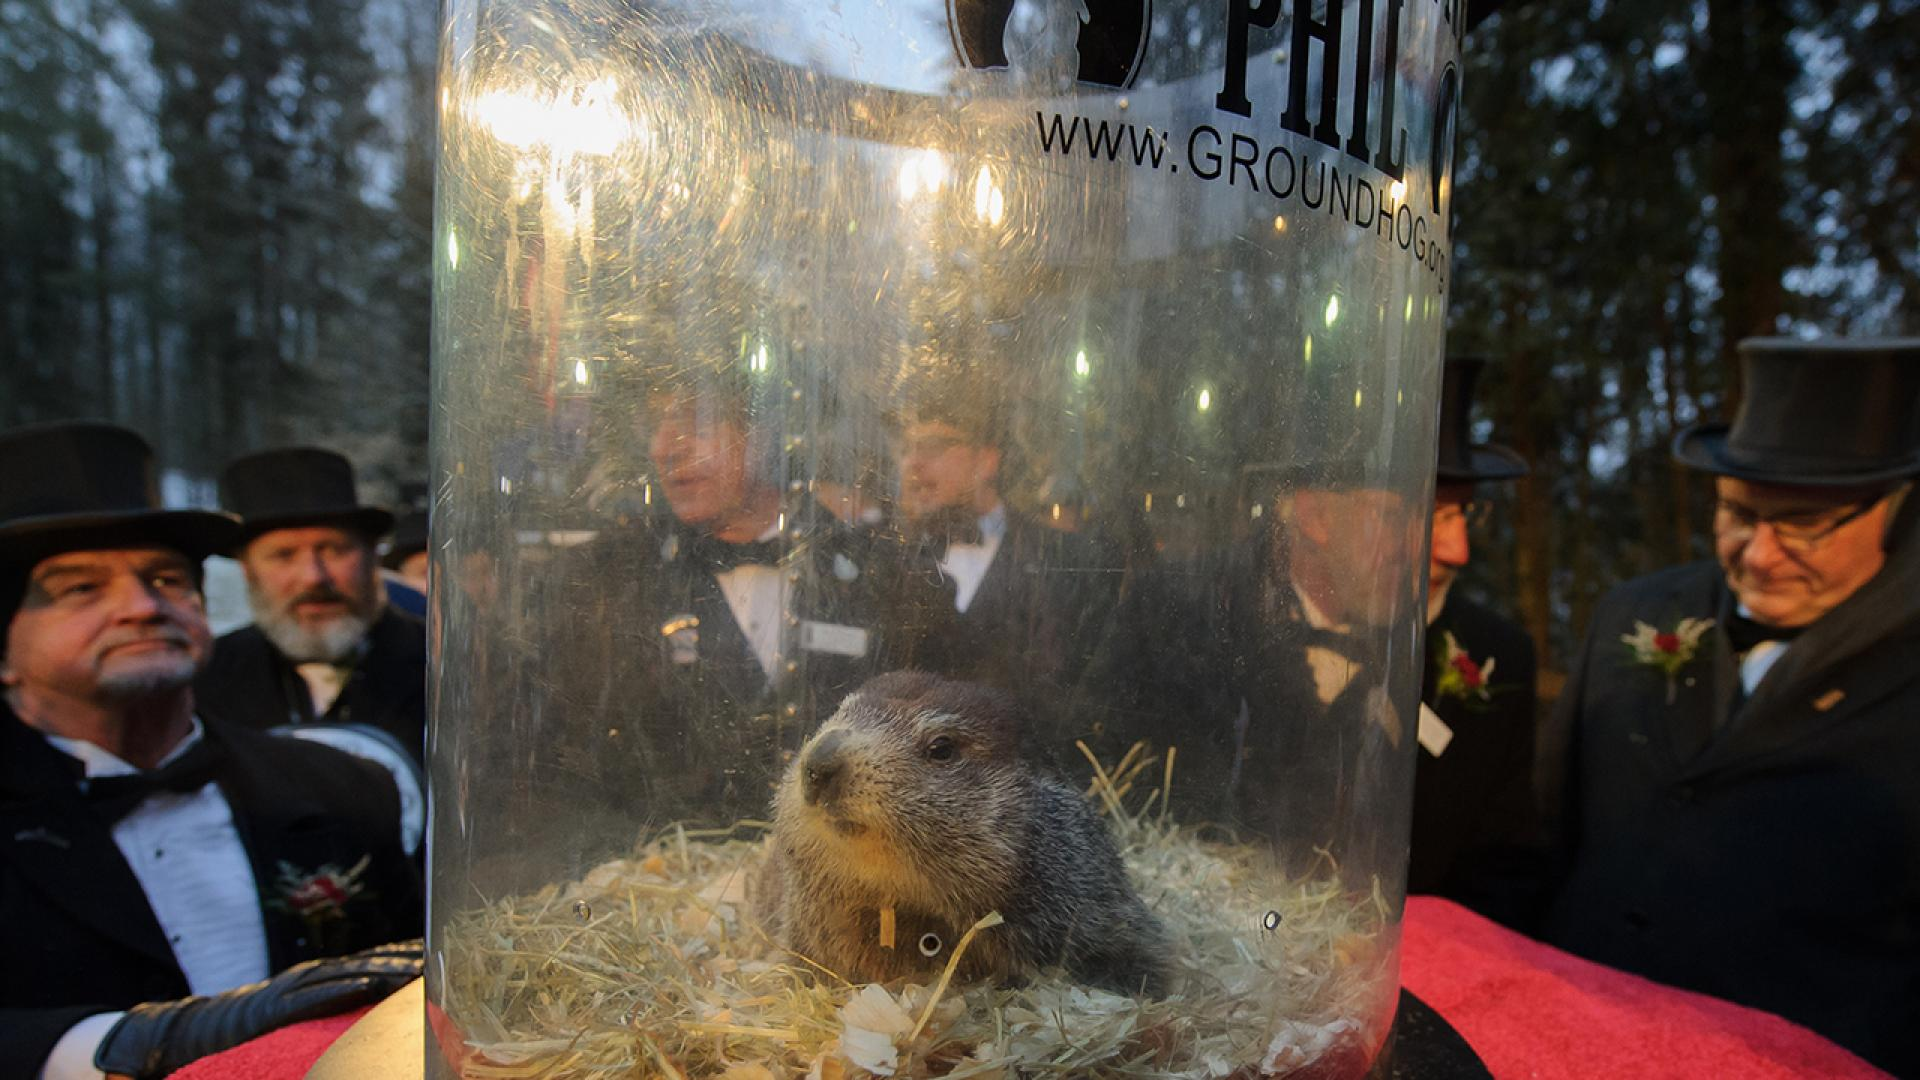 Punxsutawney Phil did not see his shadow when he came out of his burrow at at Gobbler's Knob in Punxsutawney, Pennsylvania, where thousands had gathered to celebrate Groundhog Day.